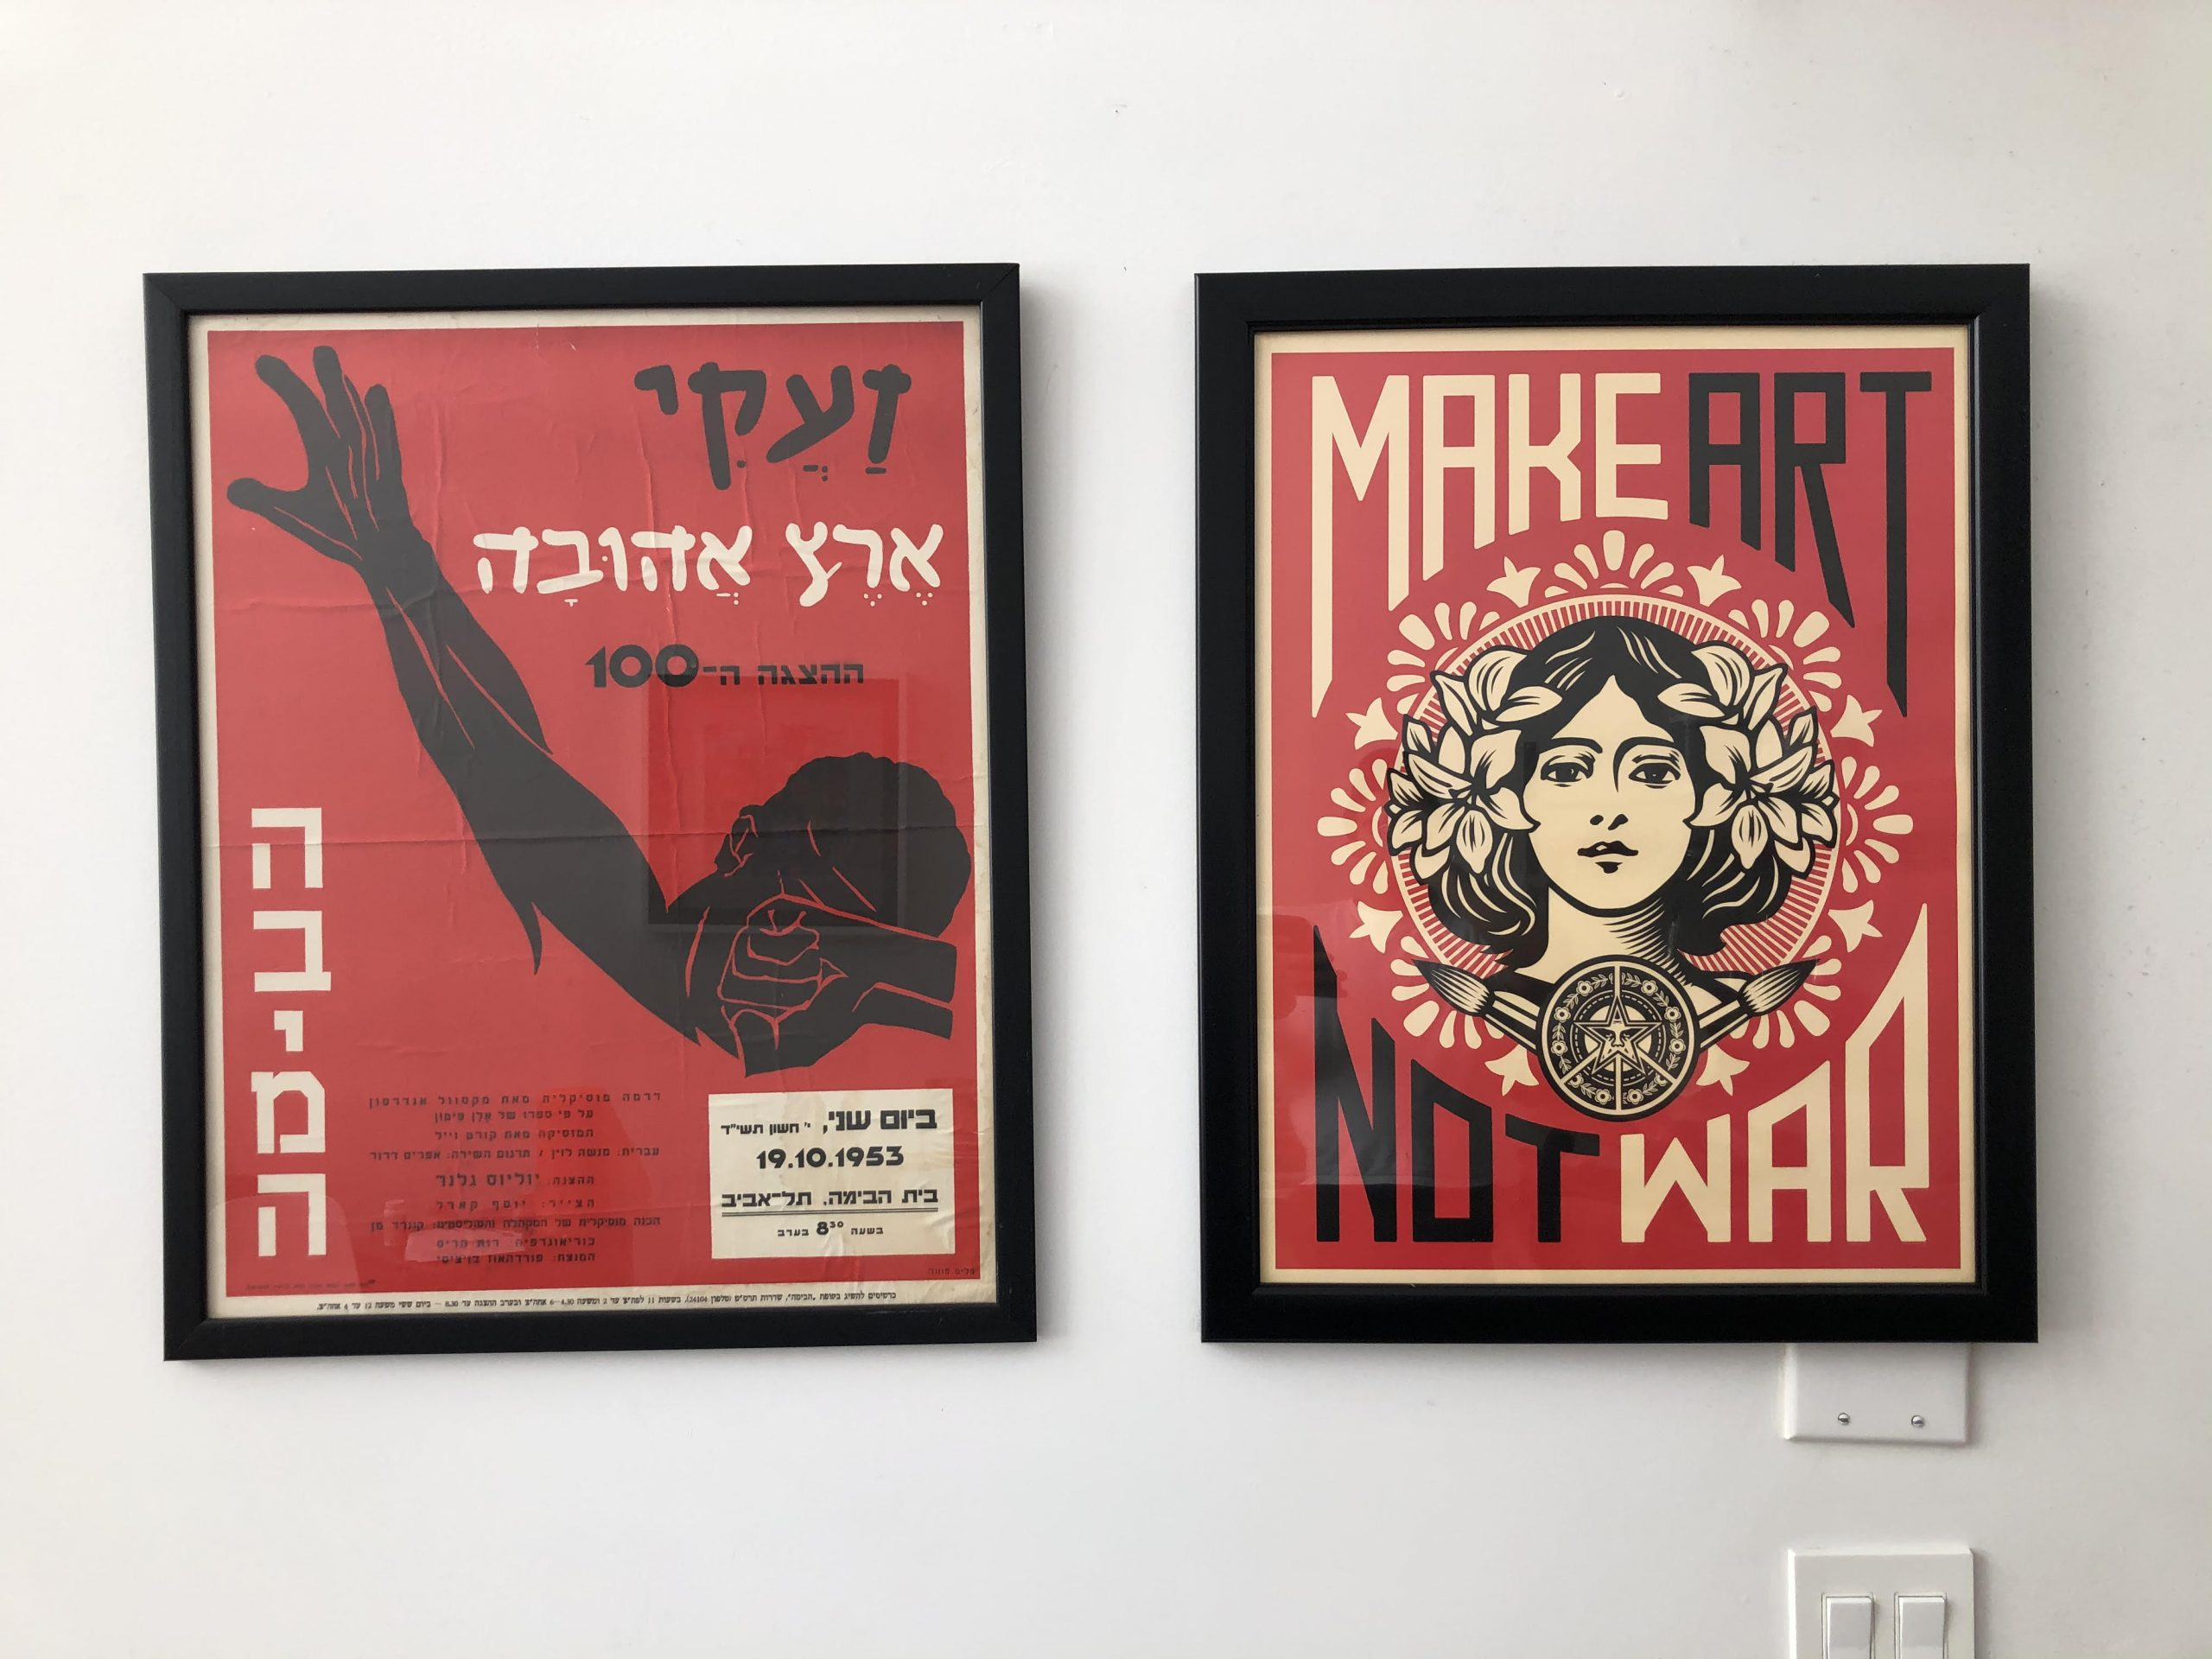 a photograph of two posters side by side